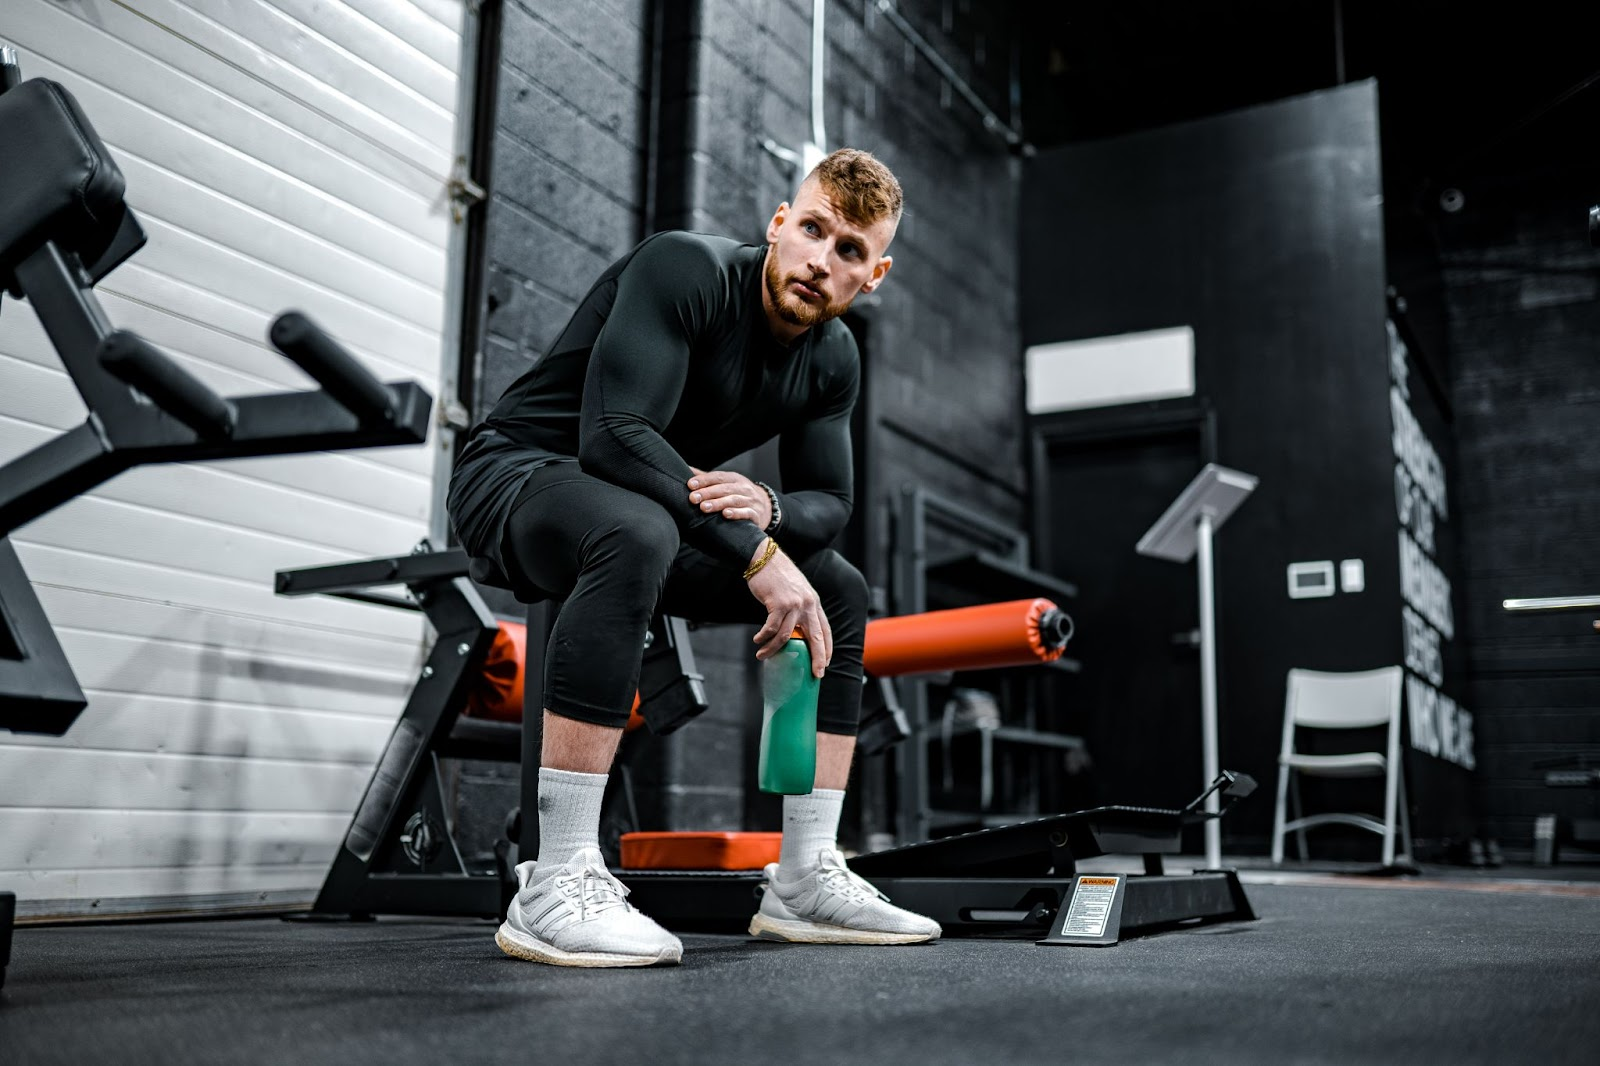 Strength And Conditioning Coach Jobs Description